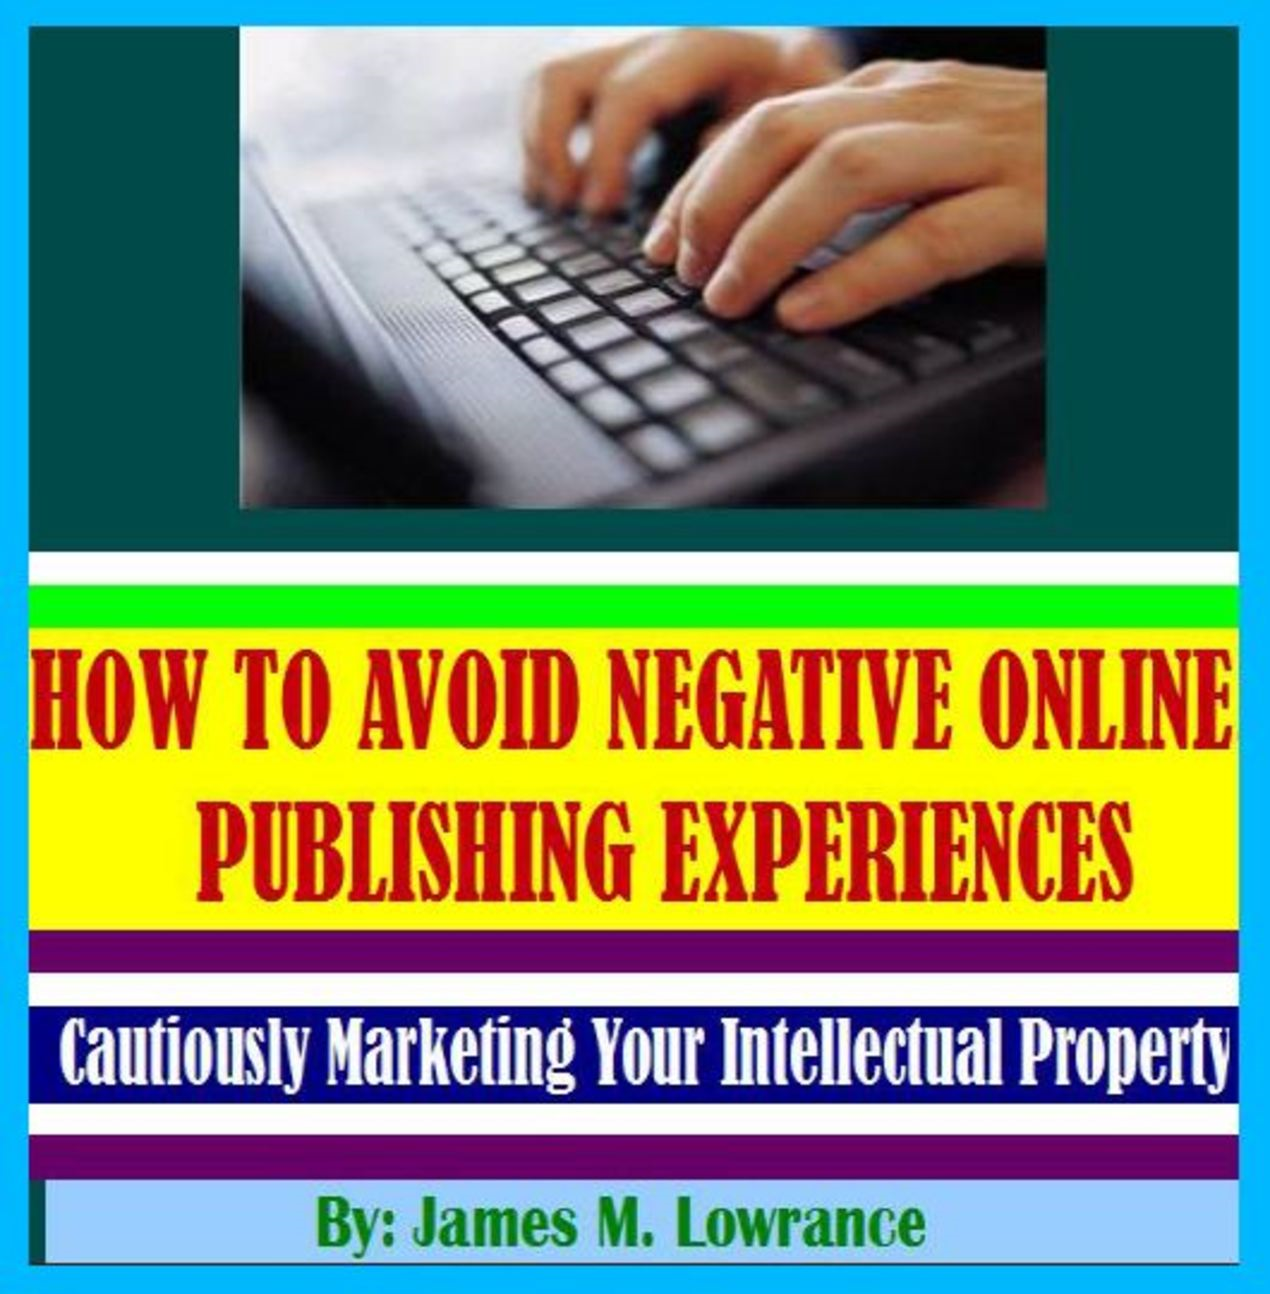 How To Avoid Negative Online Publishing Experiences By: James Lowrance